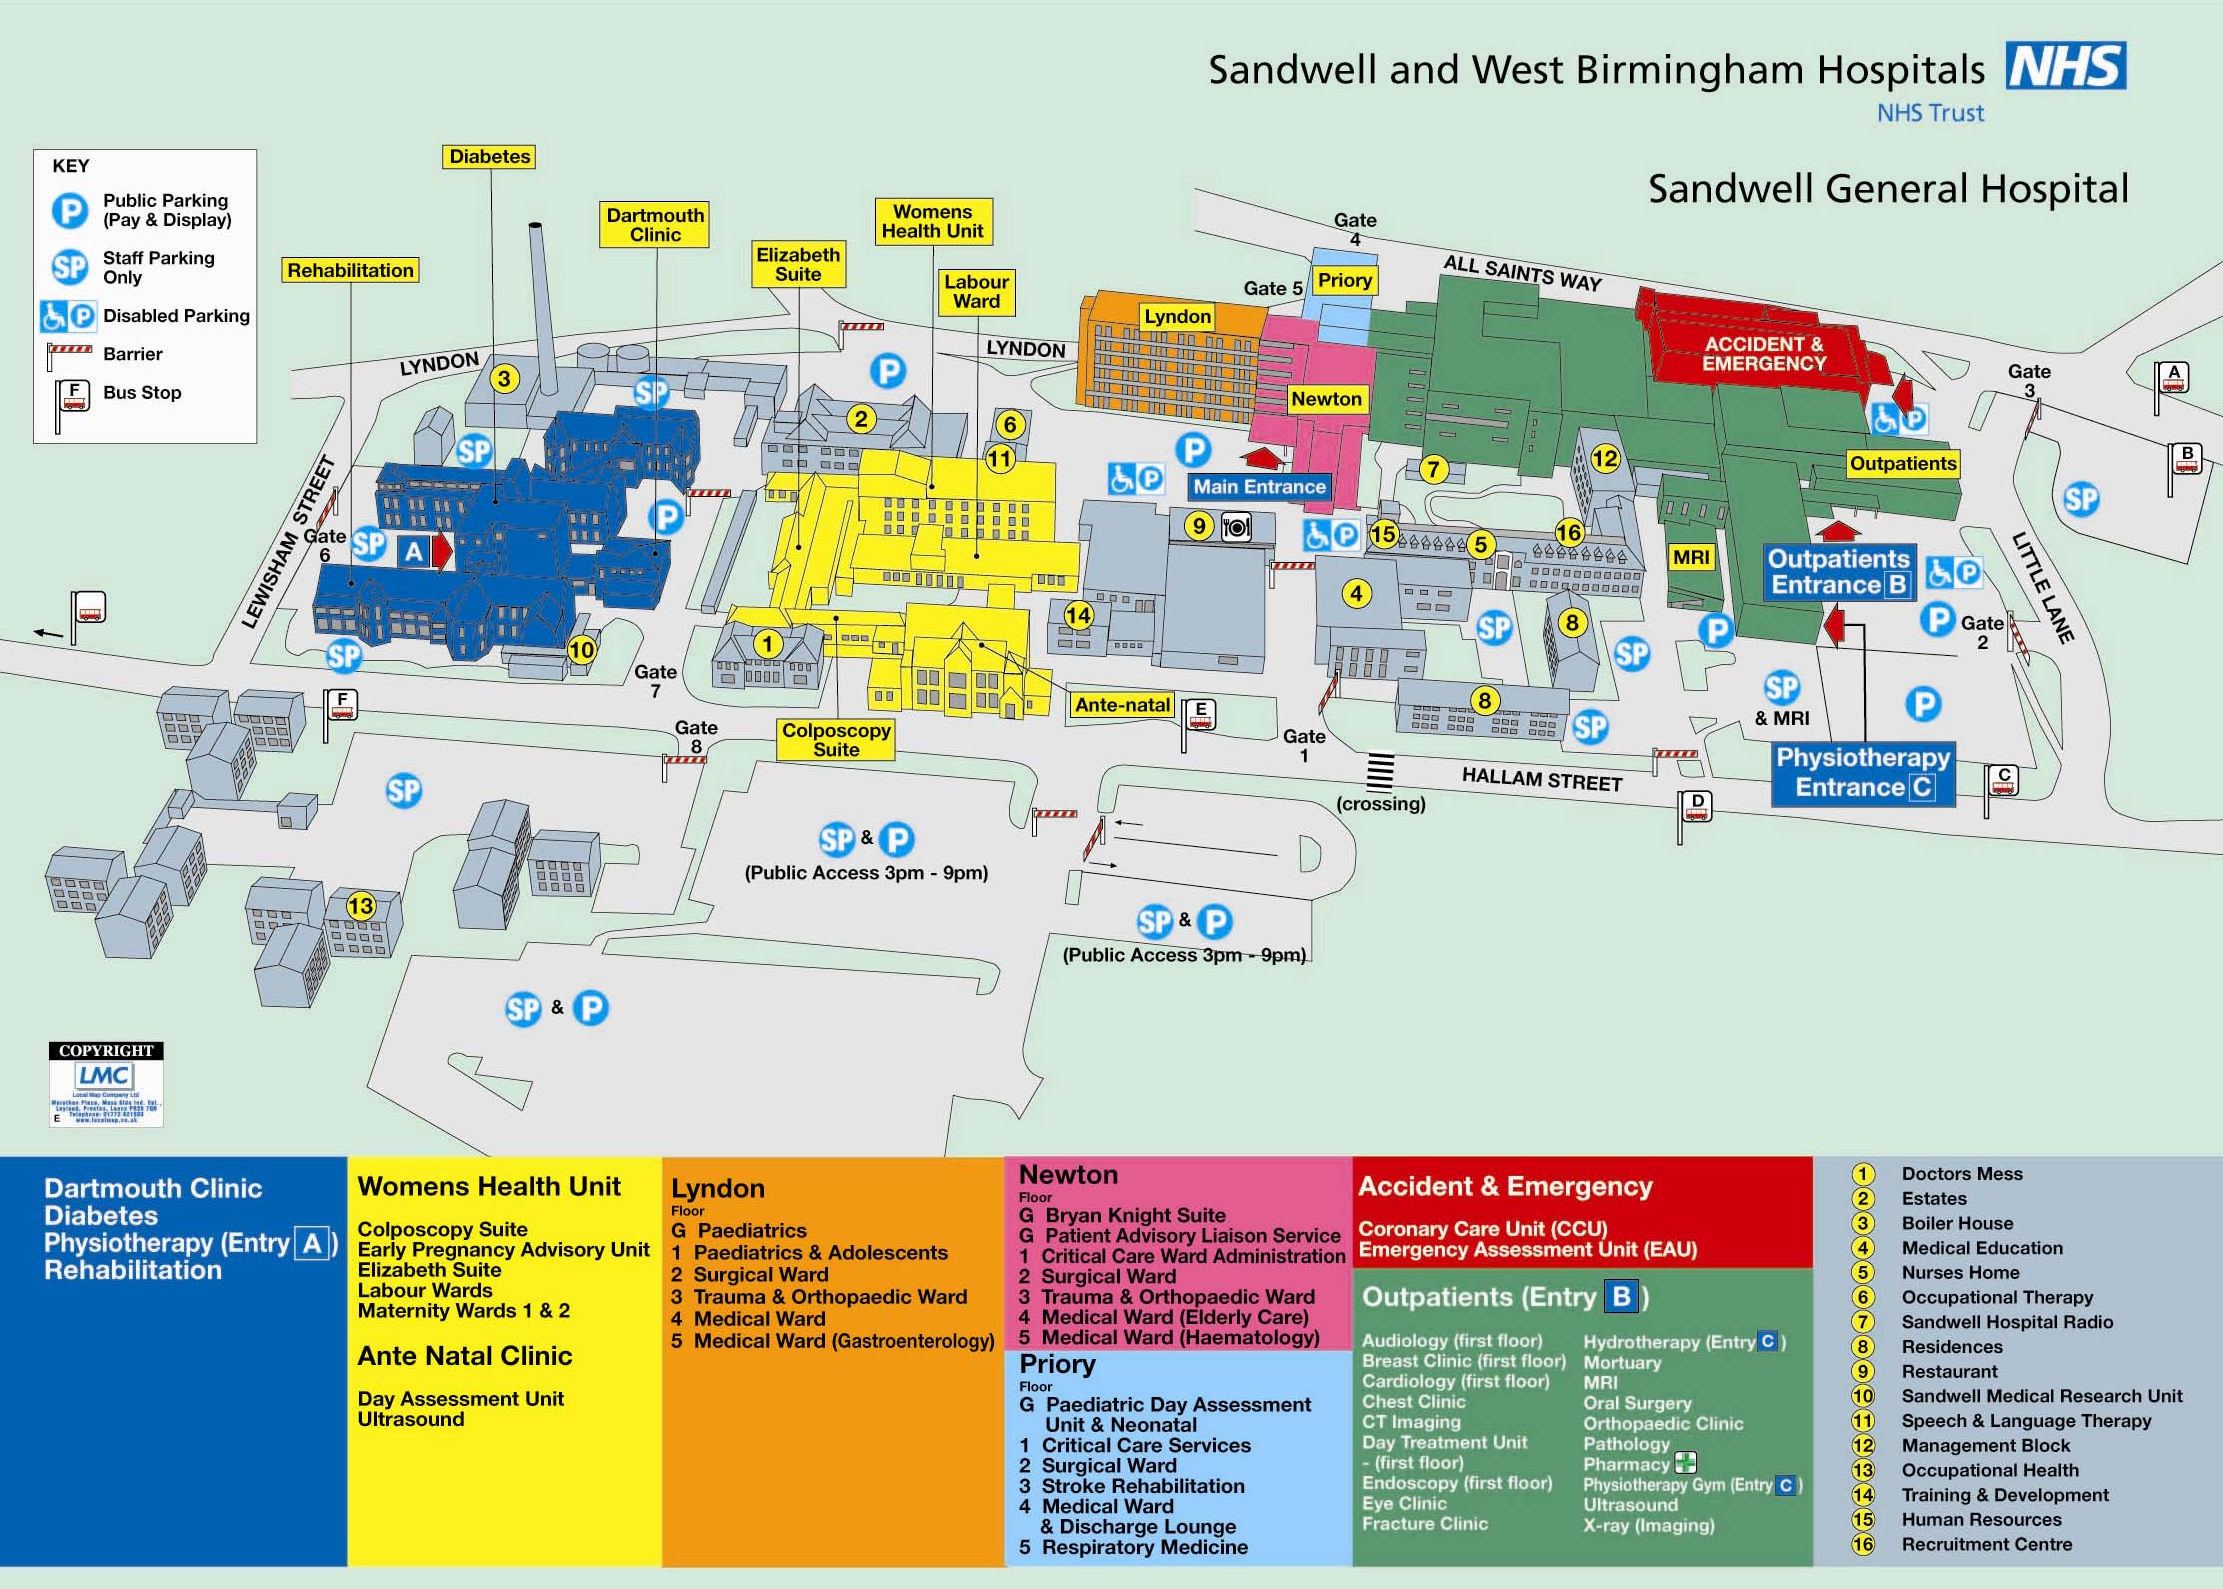 Lewisham Hospital Map Sandwell General Hospital   Sandwell and West Birmingham  Lewisham Hospital Map